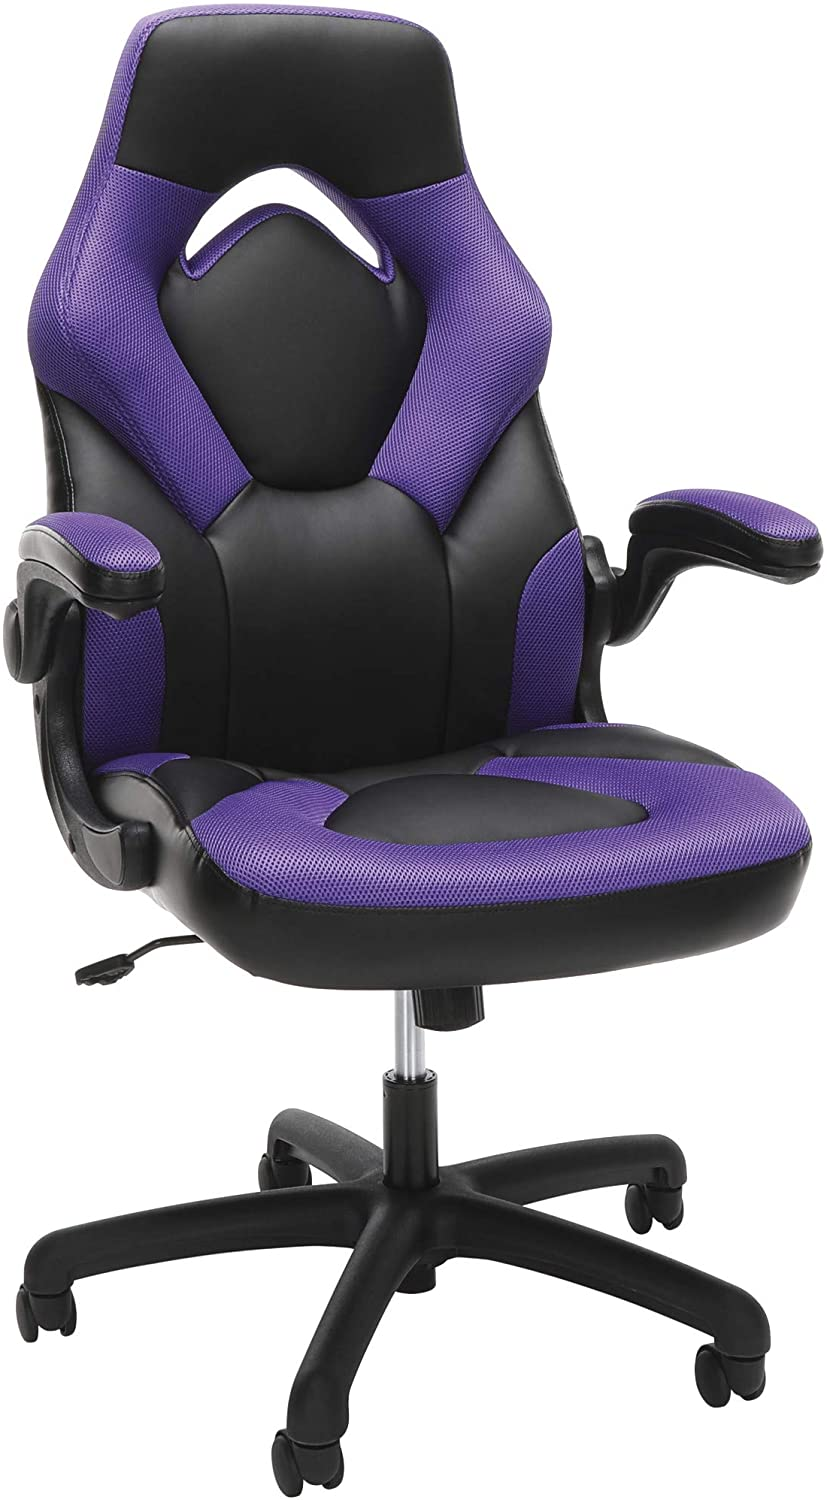 OFM Generation 1.0 Racer Style Gaming Chair